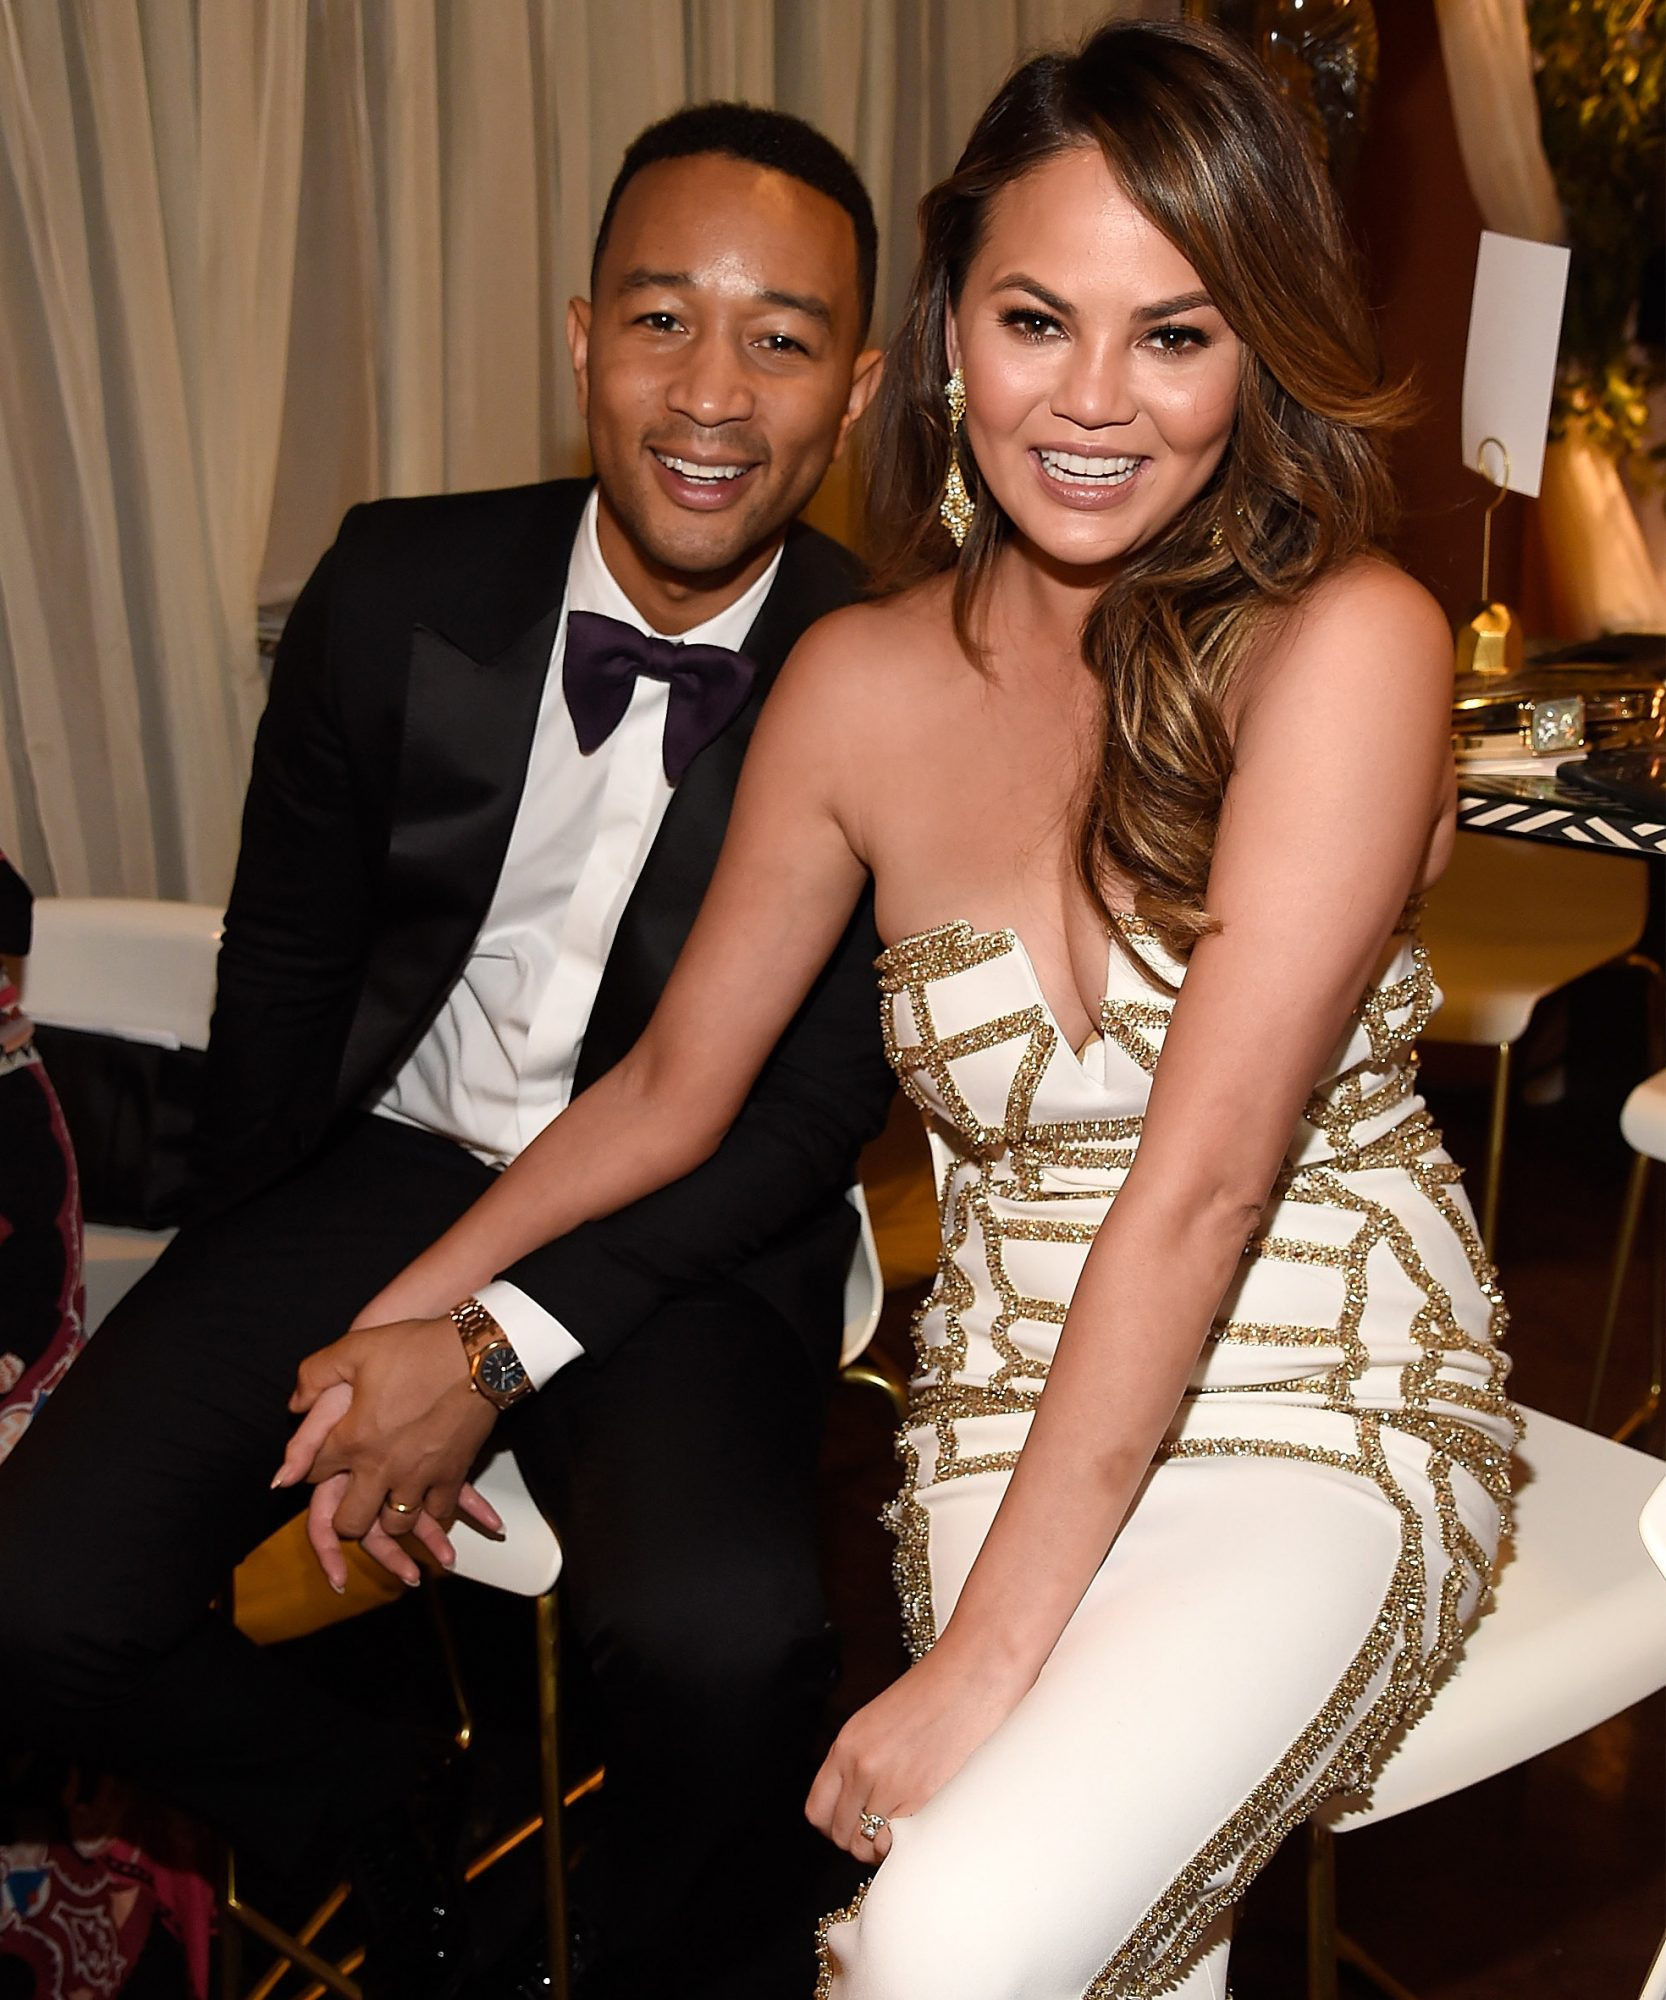 Chrissy Teigen John Legend Tony Awards 2017 - LEAD